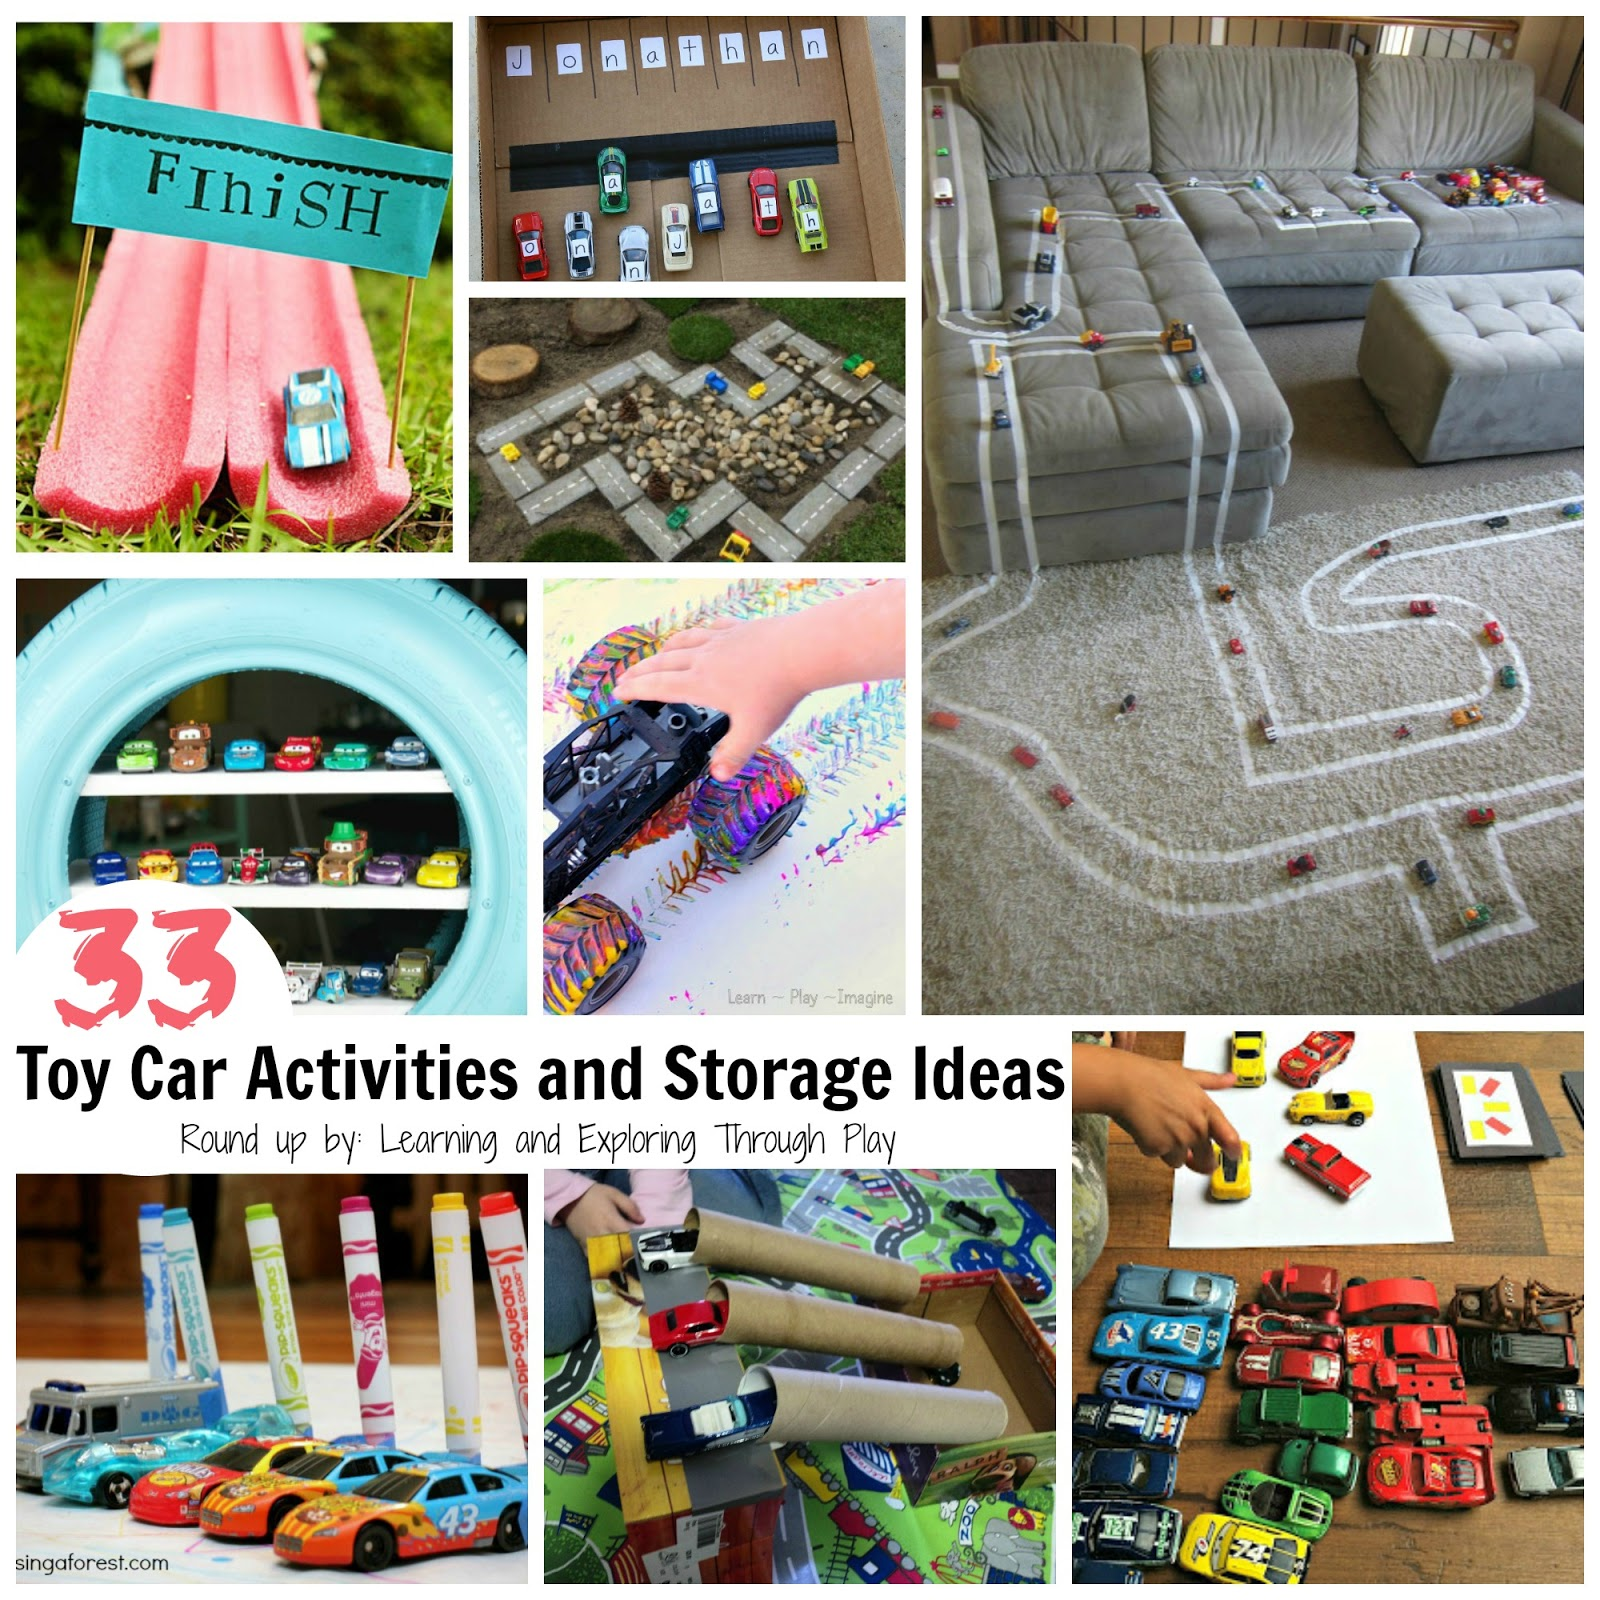 Do You Have A Little One In Your Household/setting Who Just LOVES Playing  With Toy Cars? If You Do, This Is A Collection Of Ideas You Wont Want To  Miss!